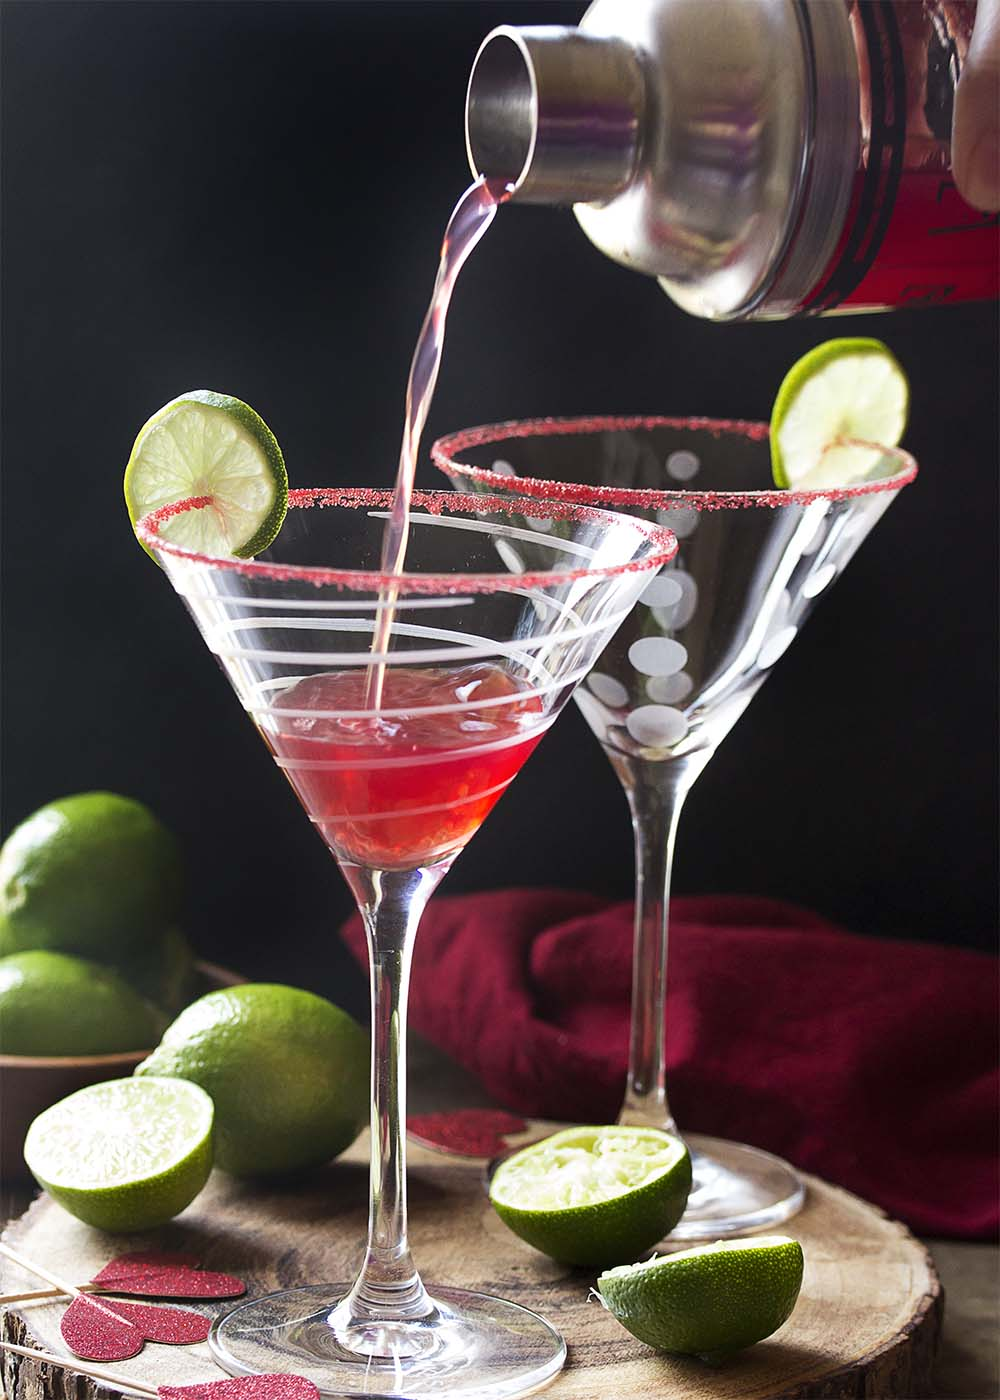 Pouring the cocktail from a shaker into a martini glass. The glass is garnished with lime and a red sugar rim. Cut limes scattered about.